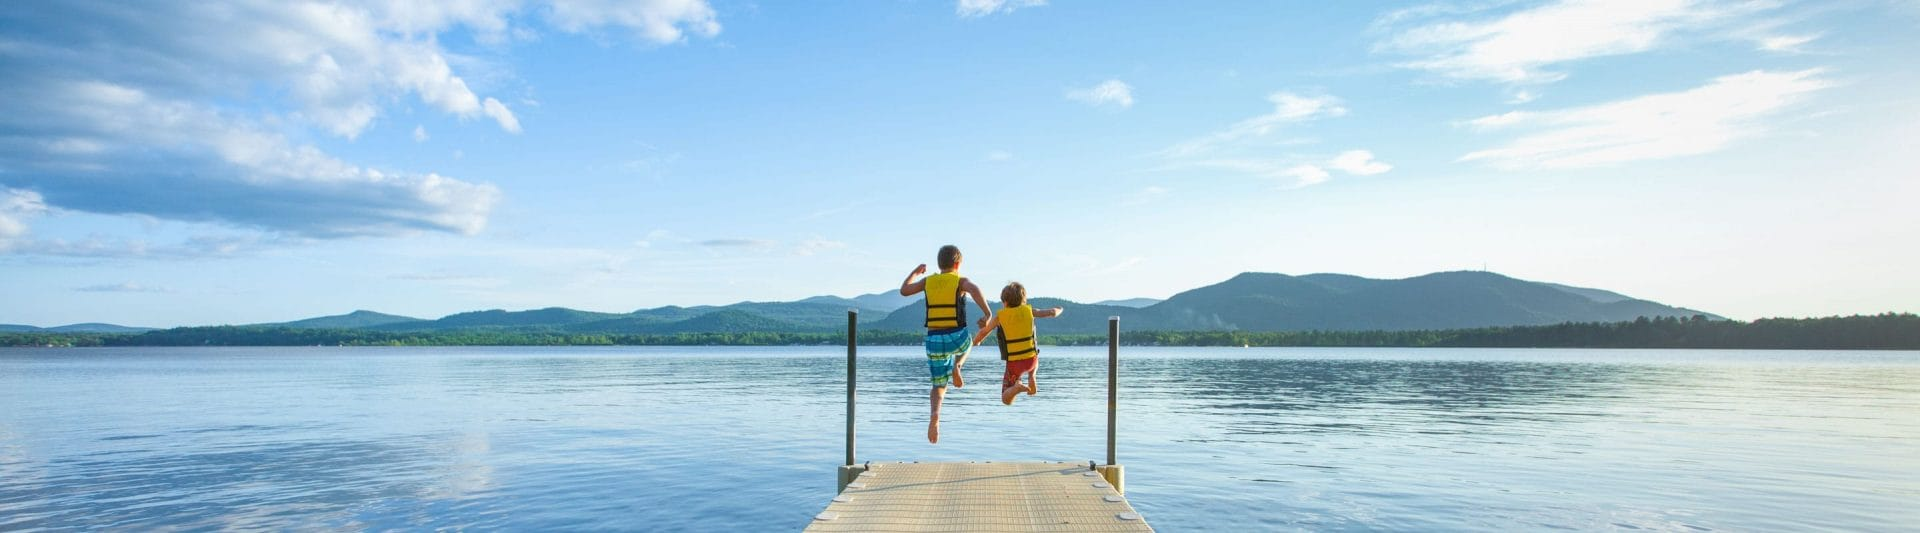 two boys jumping off a pier into a lake